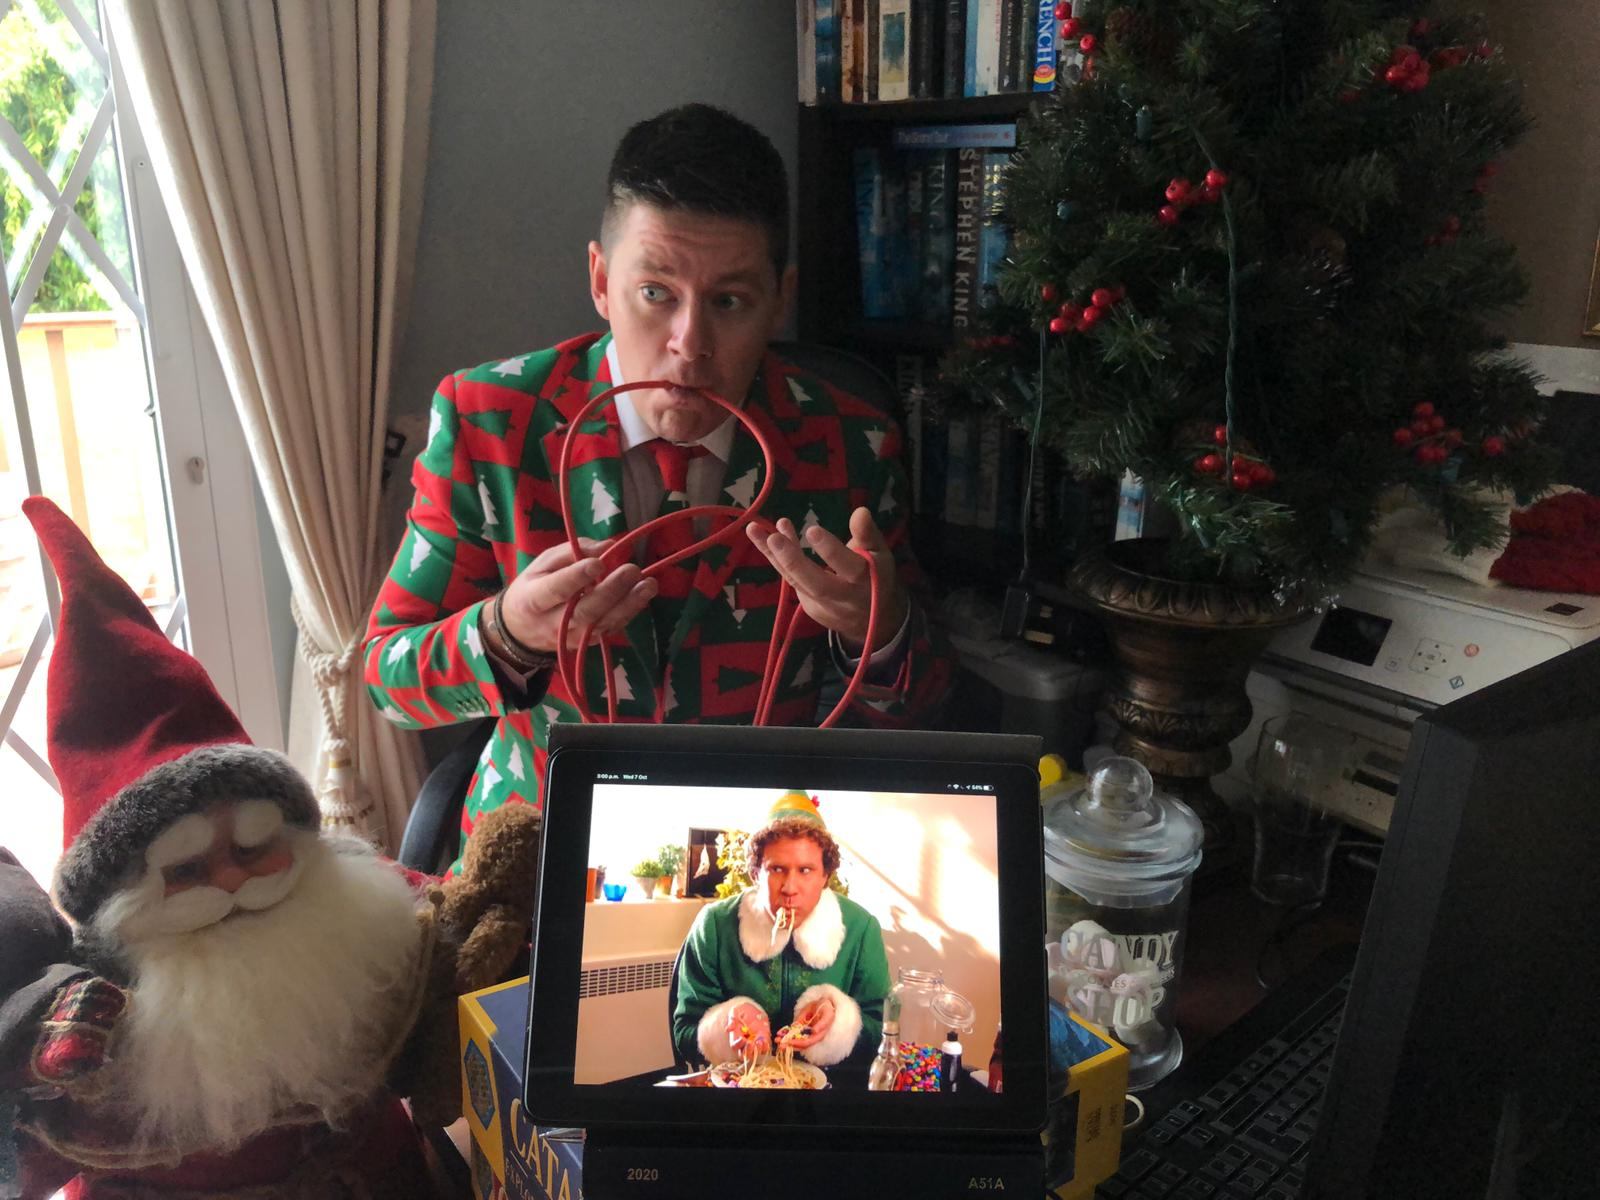 Delegate recreating a photo from Elf during one of Orangeworks team building activities called A Picture Perfect Christmas.